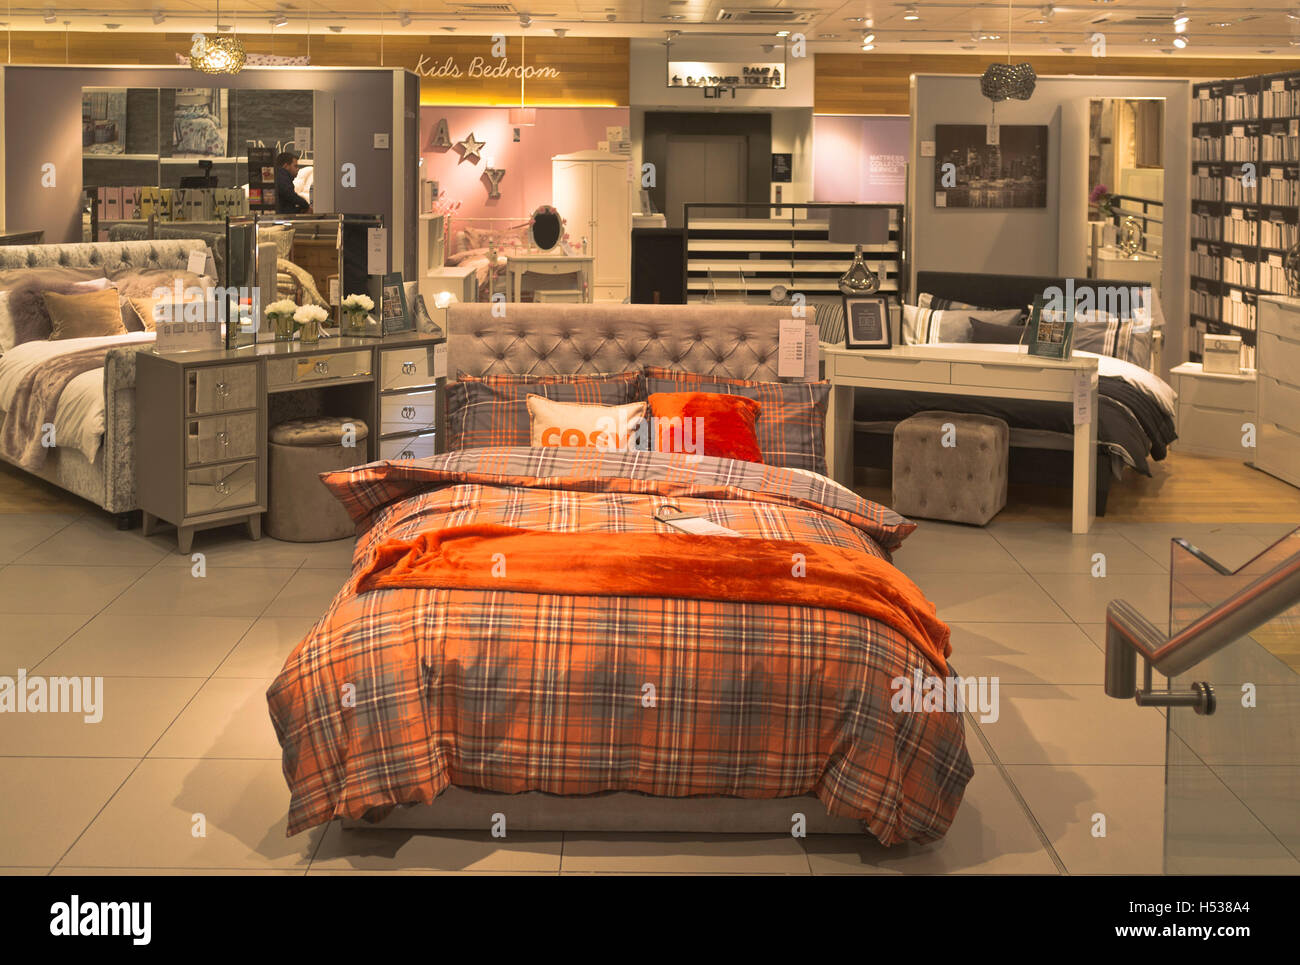 Dh Next Home Shop Uk Next Home Store Bedroom Department